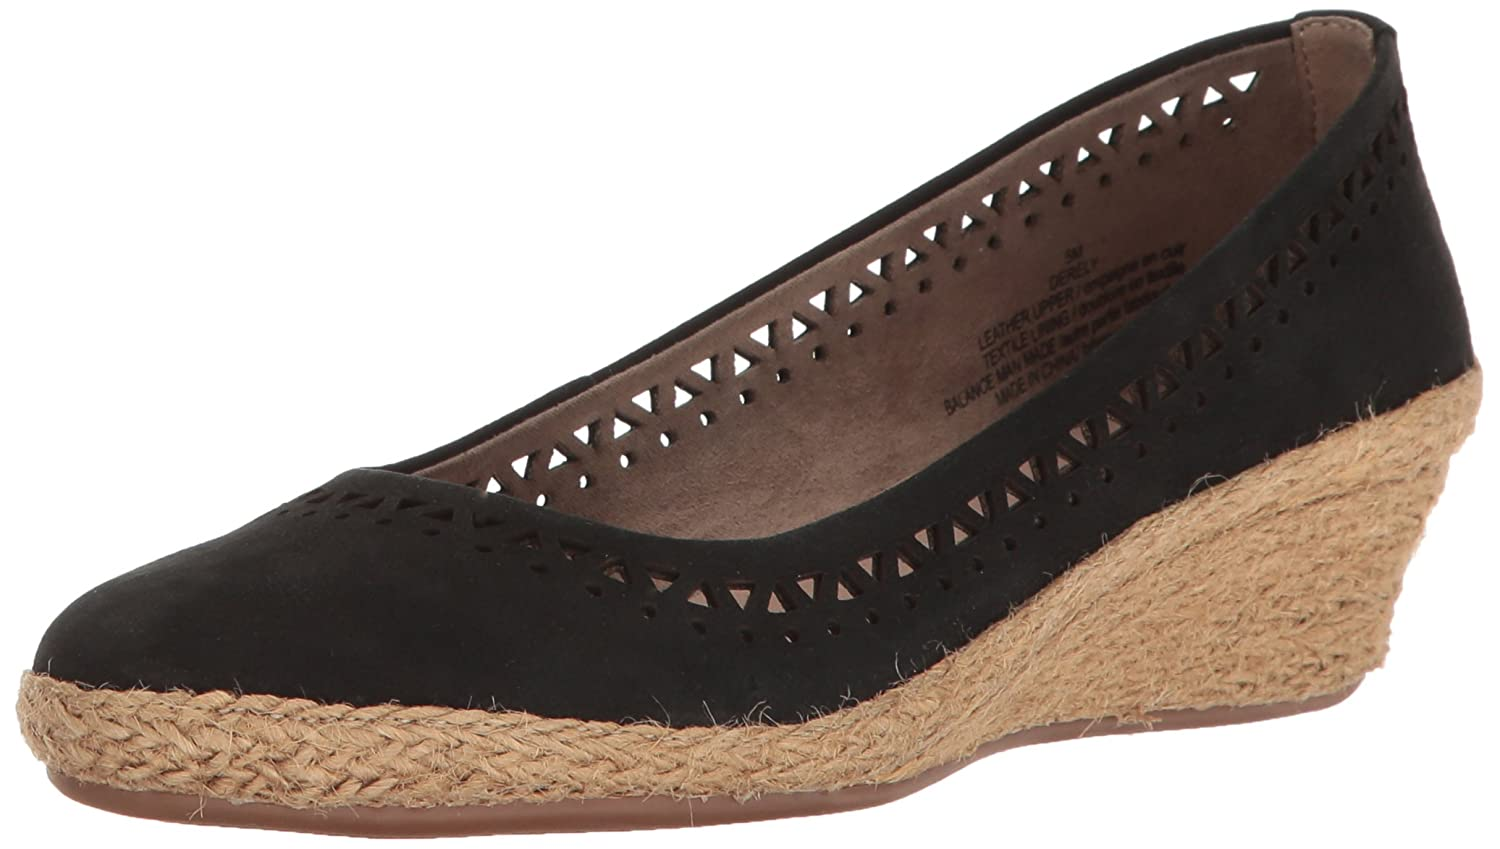 Easy Spirit Women's Derely Wedge Pump B01N0KEQA2 7 N US|Black Nubuck